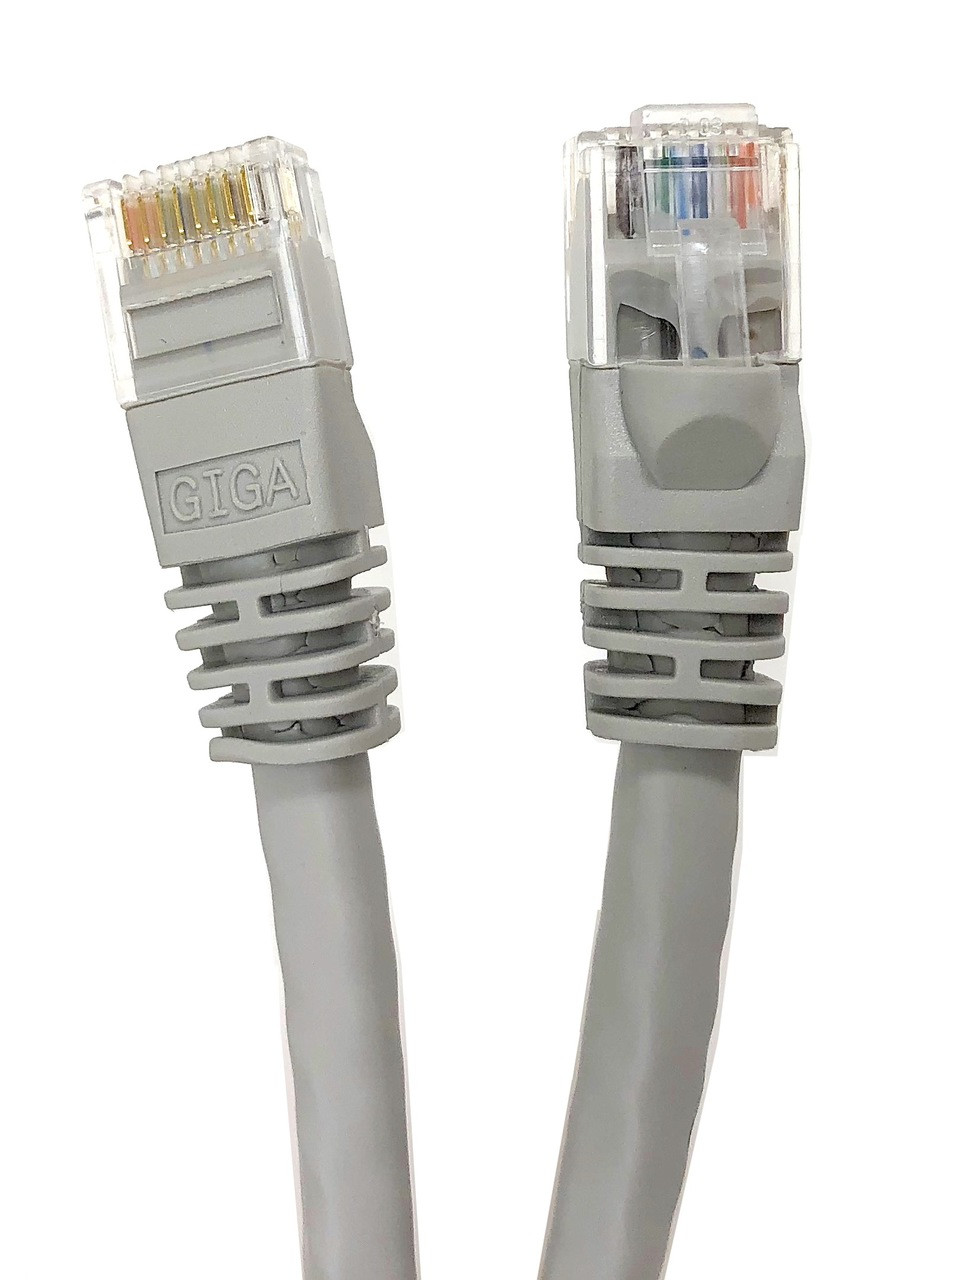 Category 6 UTP RJ45 Patch Cable Beige - 14 ft